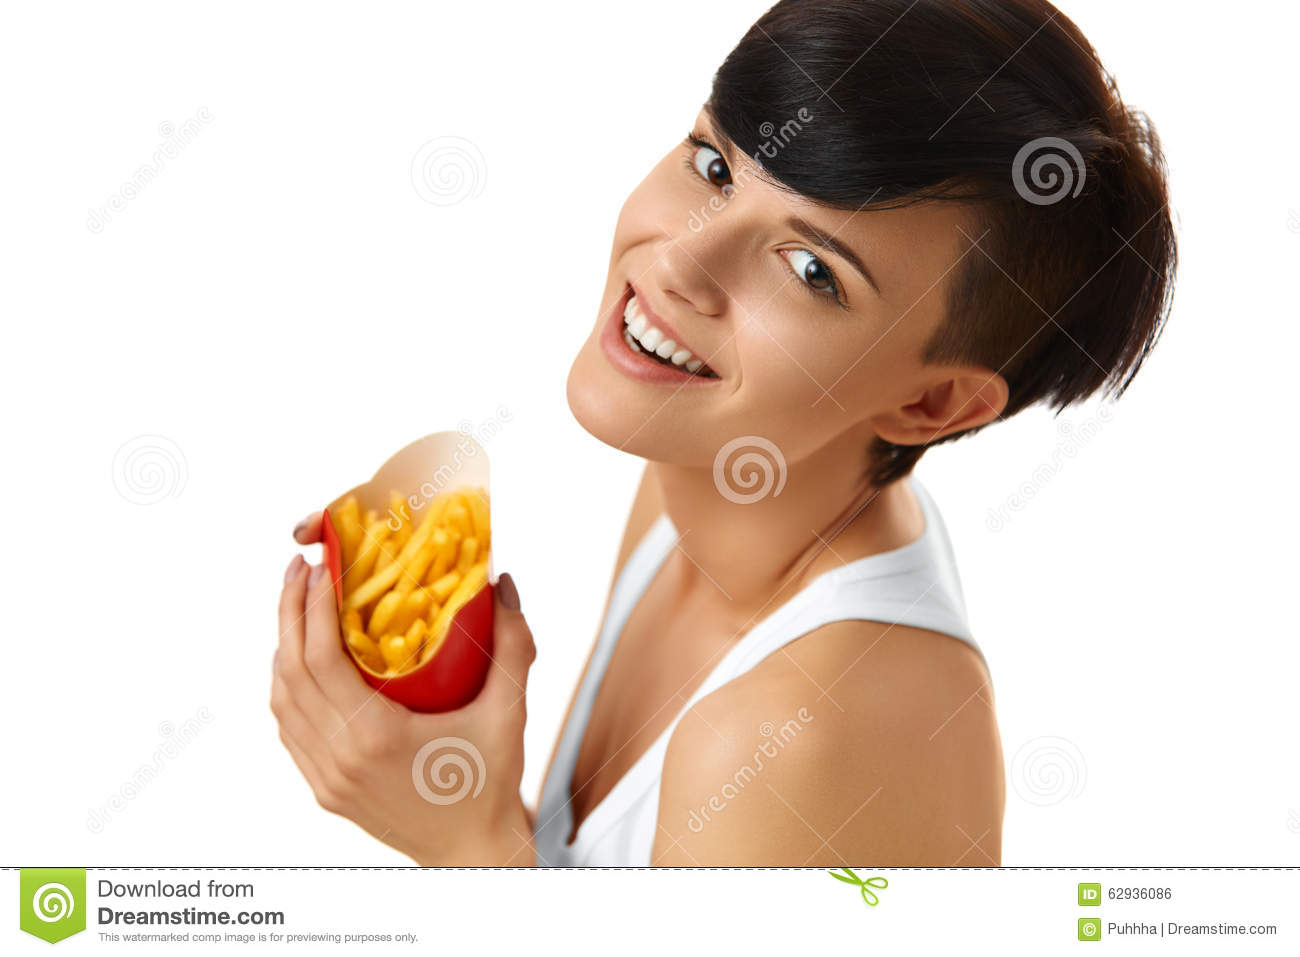 Eating Fast Food Girl Eating French Fries Nutrition Lifestyle Stock Photo Image 62936086